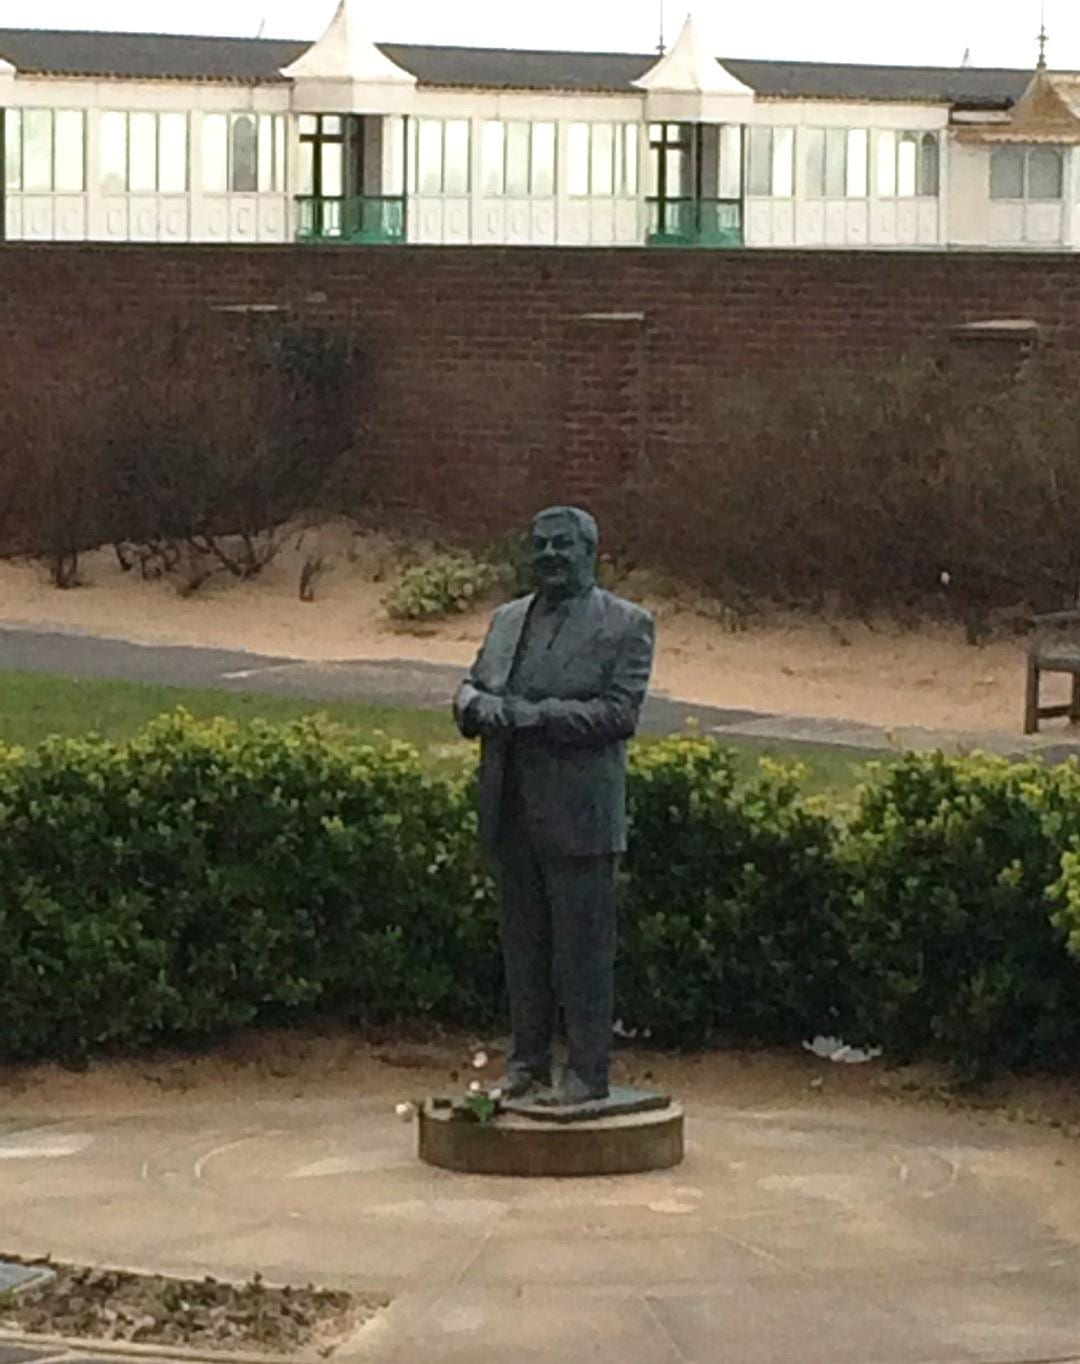 Les Dawson statue he's part of the history of St Annes